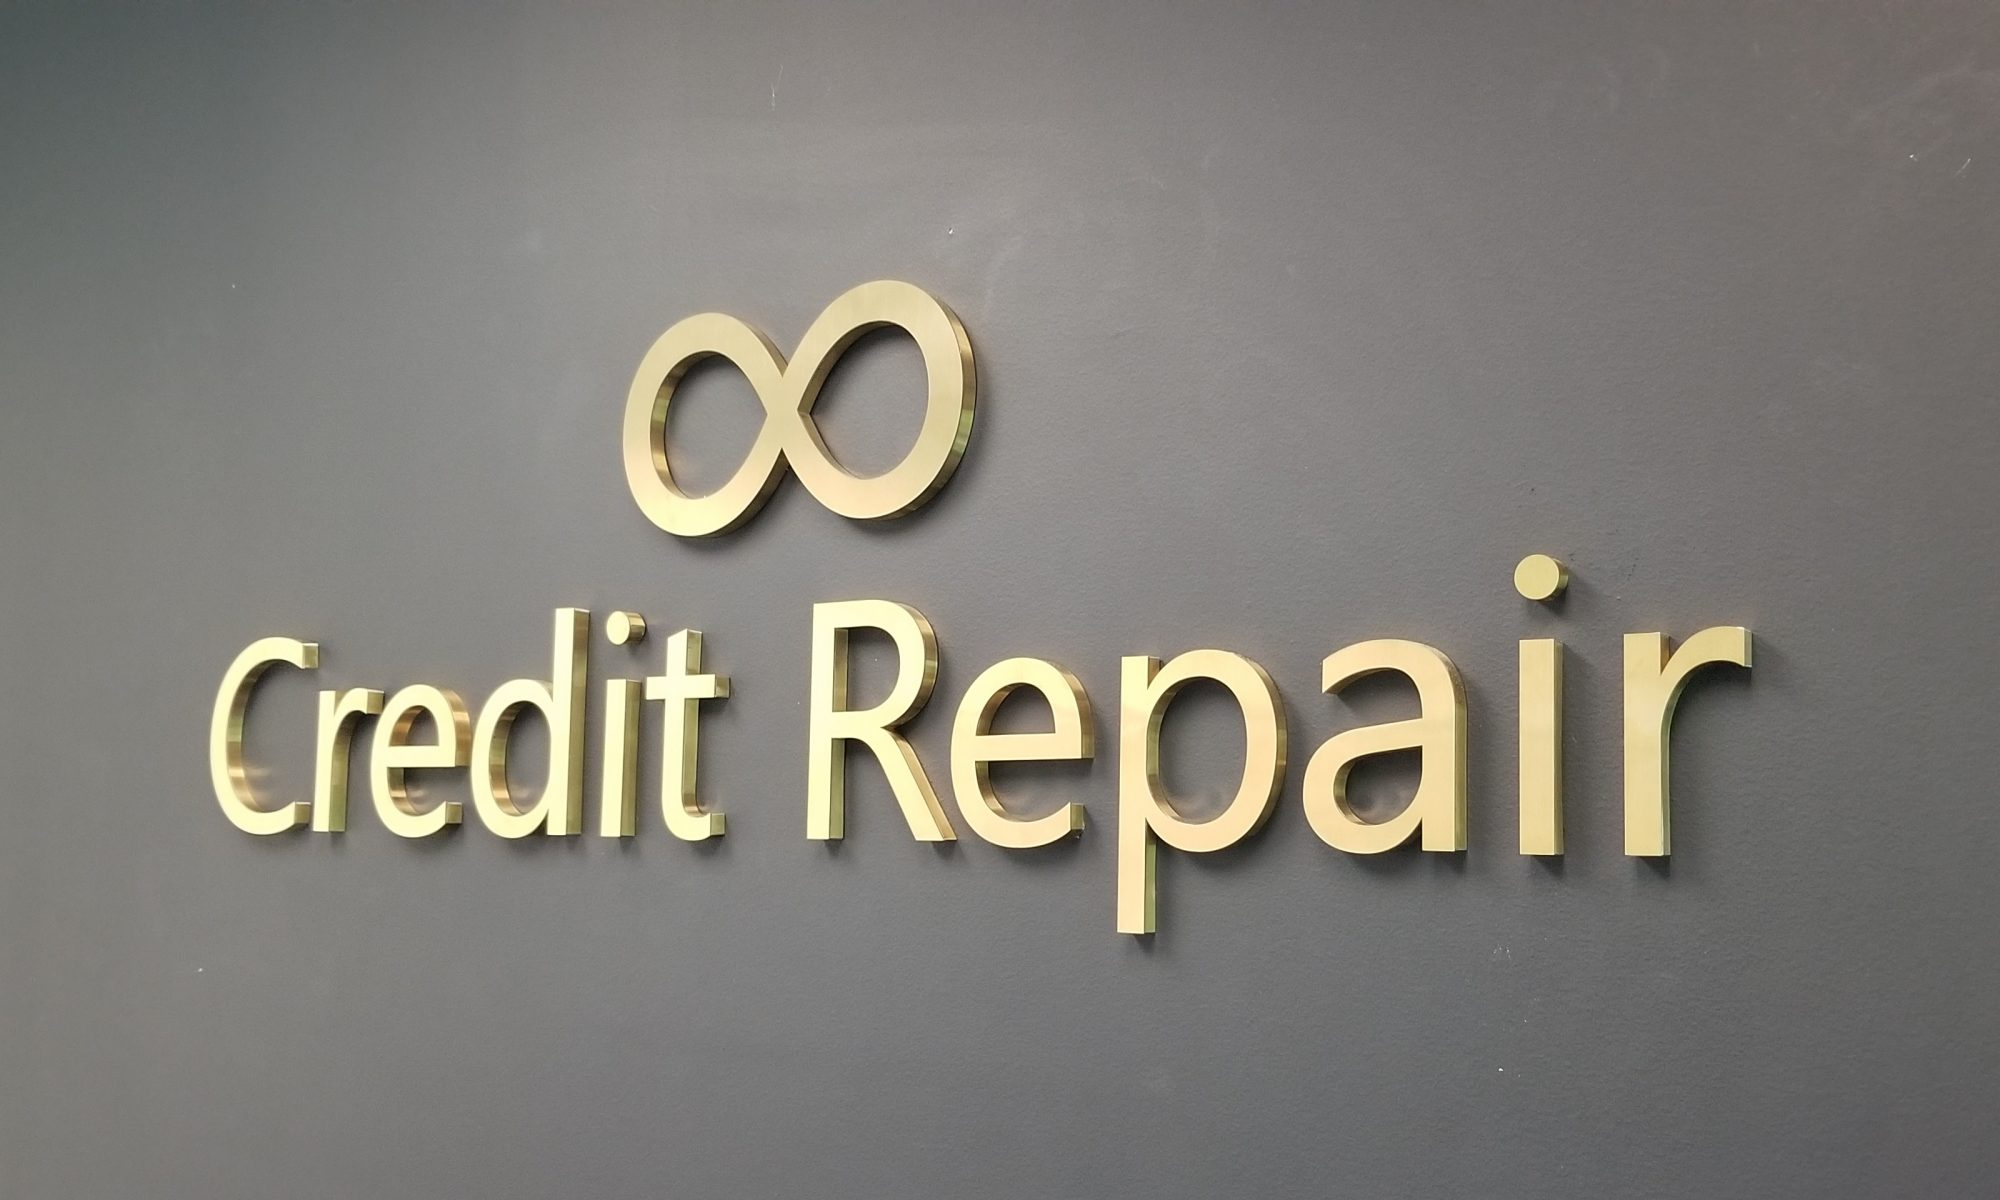 This is the metal office lobby sign we made for Unlimited Credit Repair in Woodland Hills.